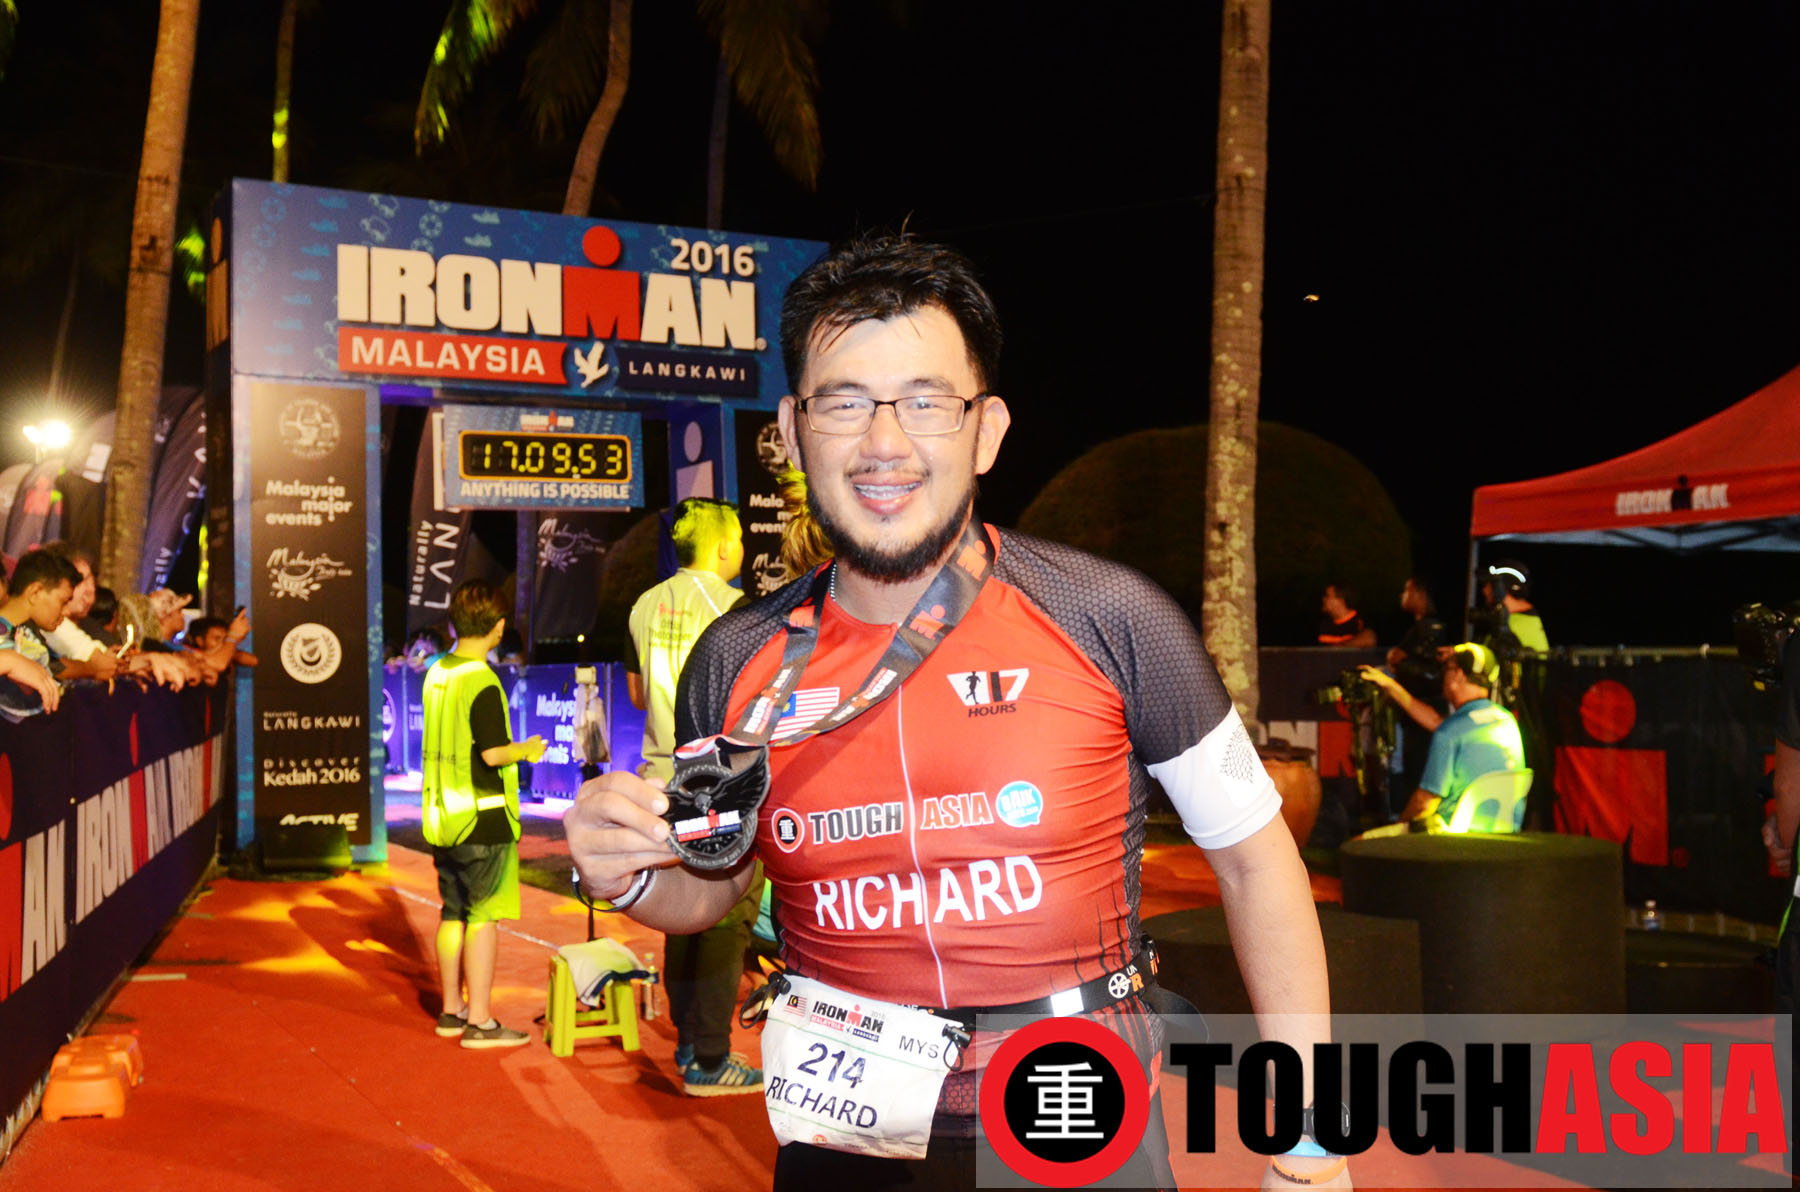 A jubilant Richard Lee, soaking up the euphoria at the Ironman Malaysia finish line.